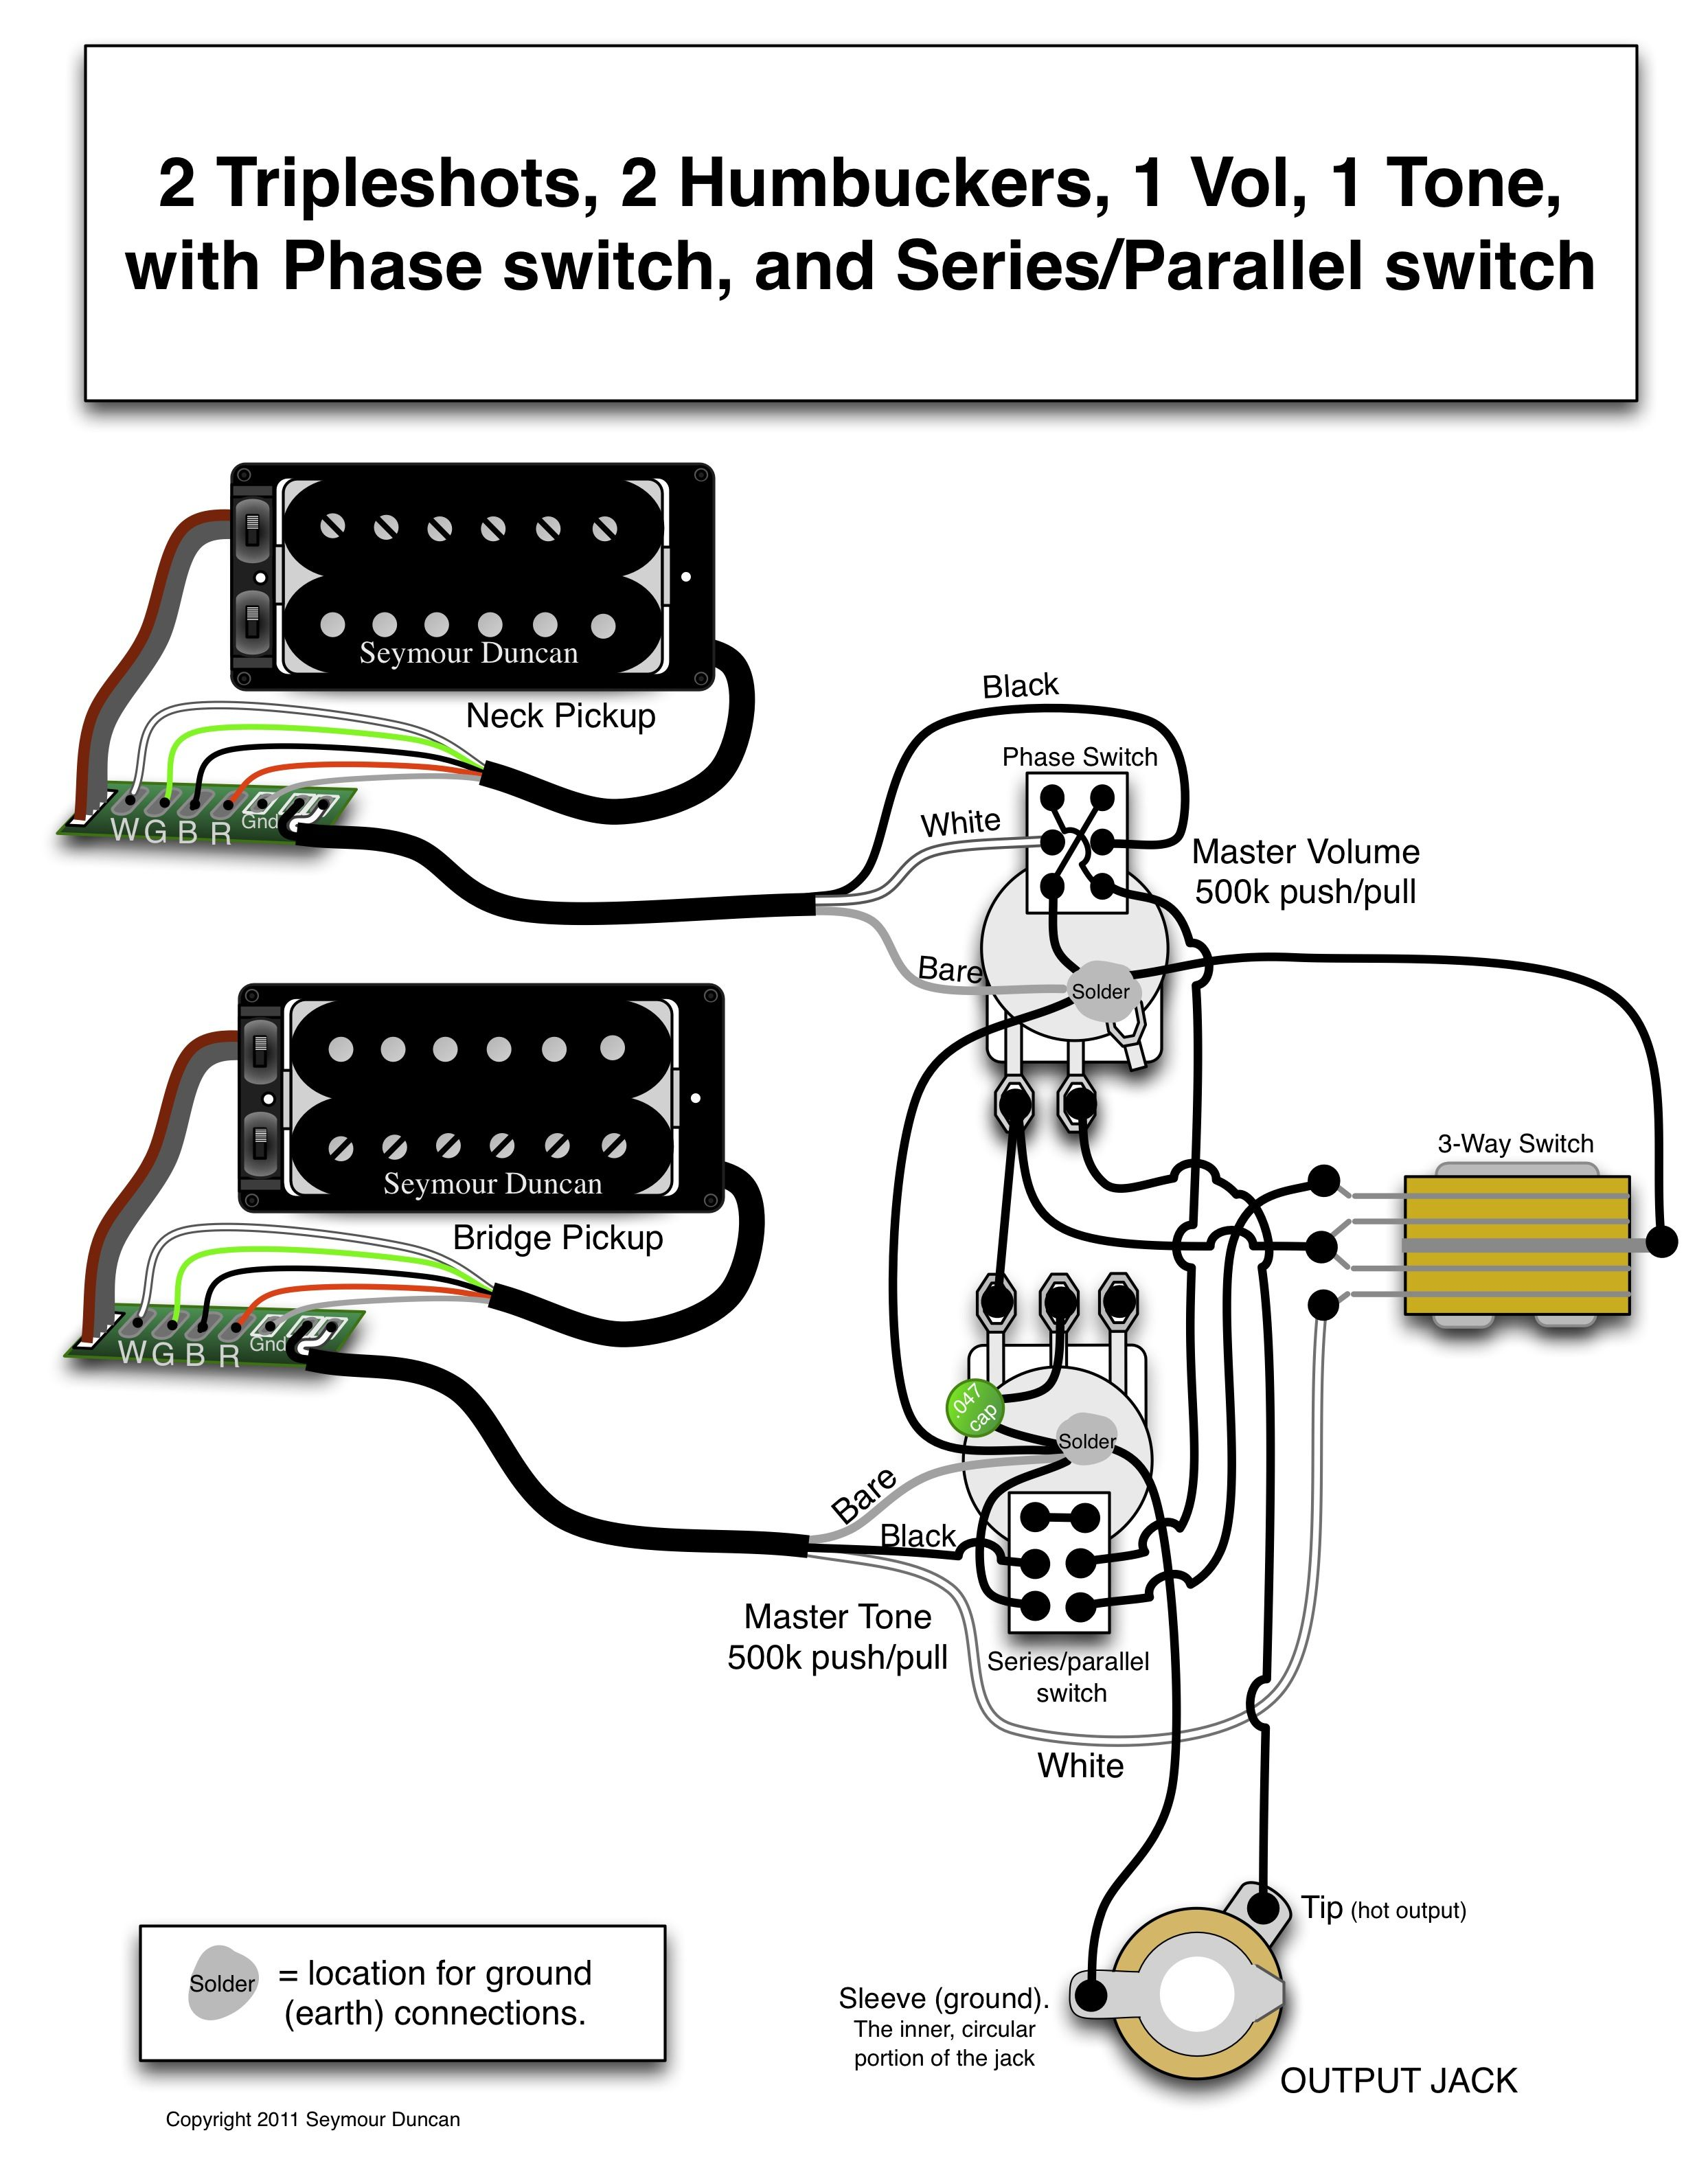 seymour duncan wiring diagram 2 triple shots 2 humbuckers 1 explore guitar tips guitar lessons and more seymour duncan wiring diagram